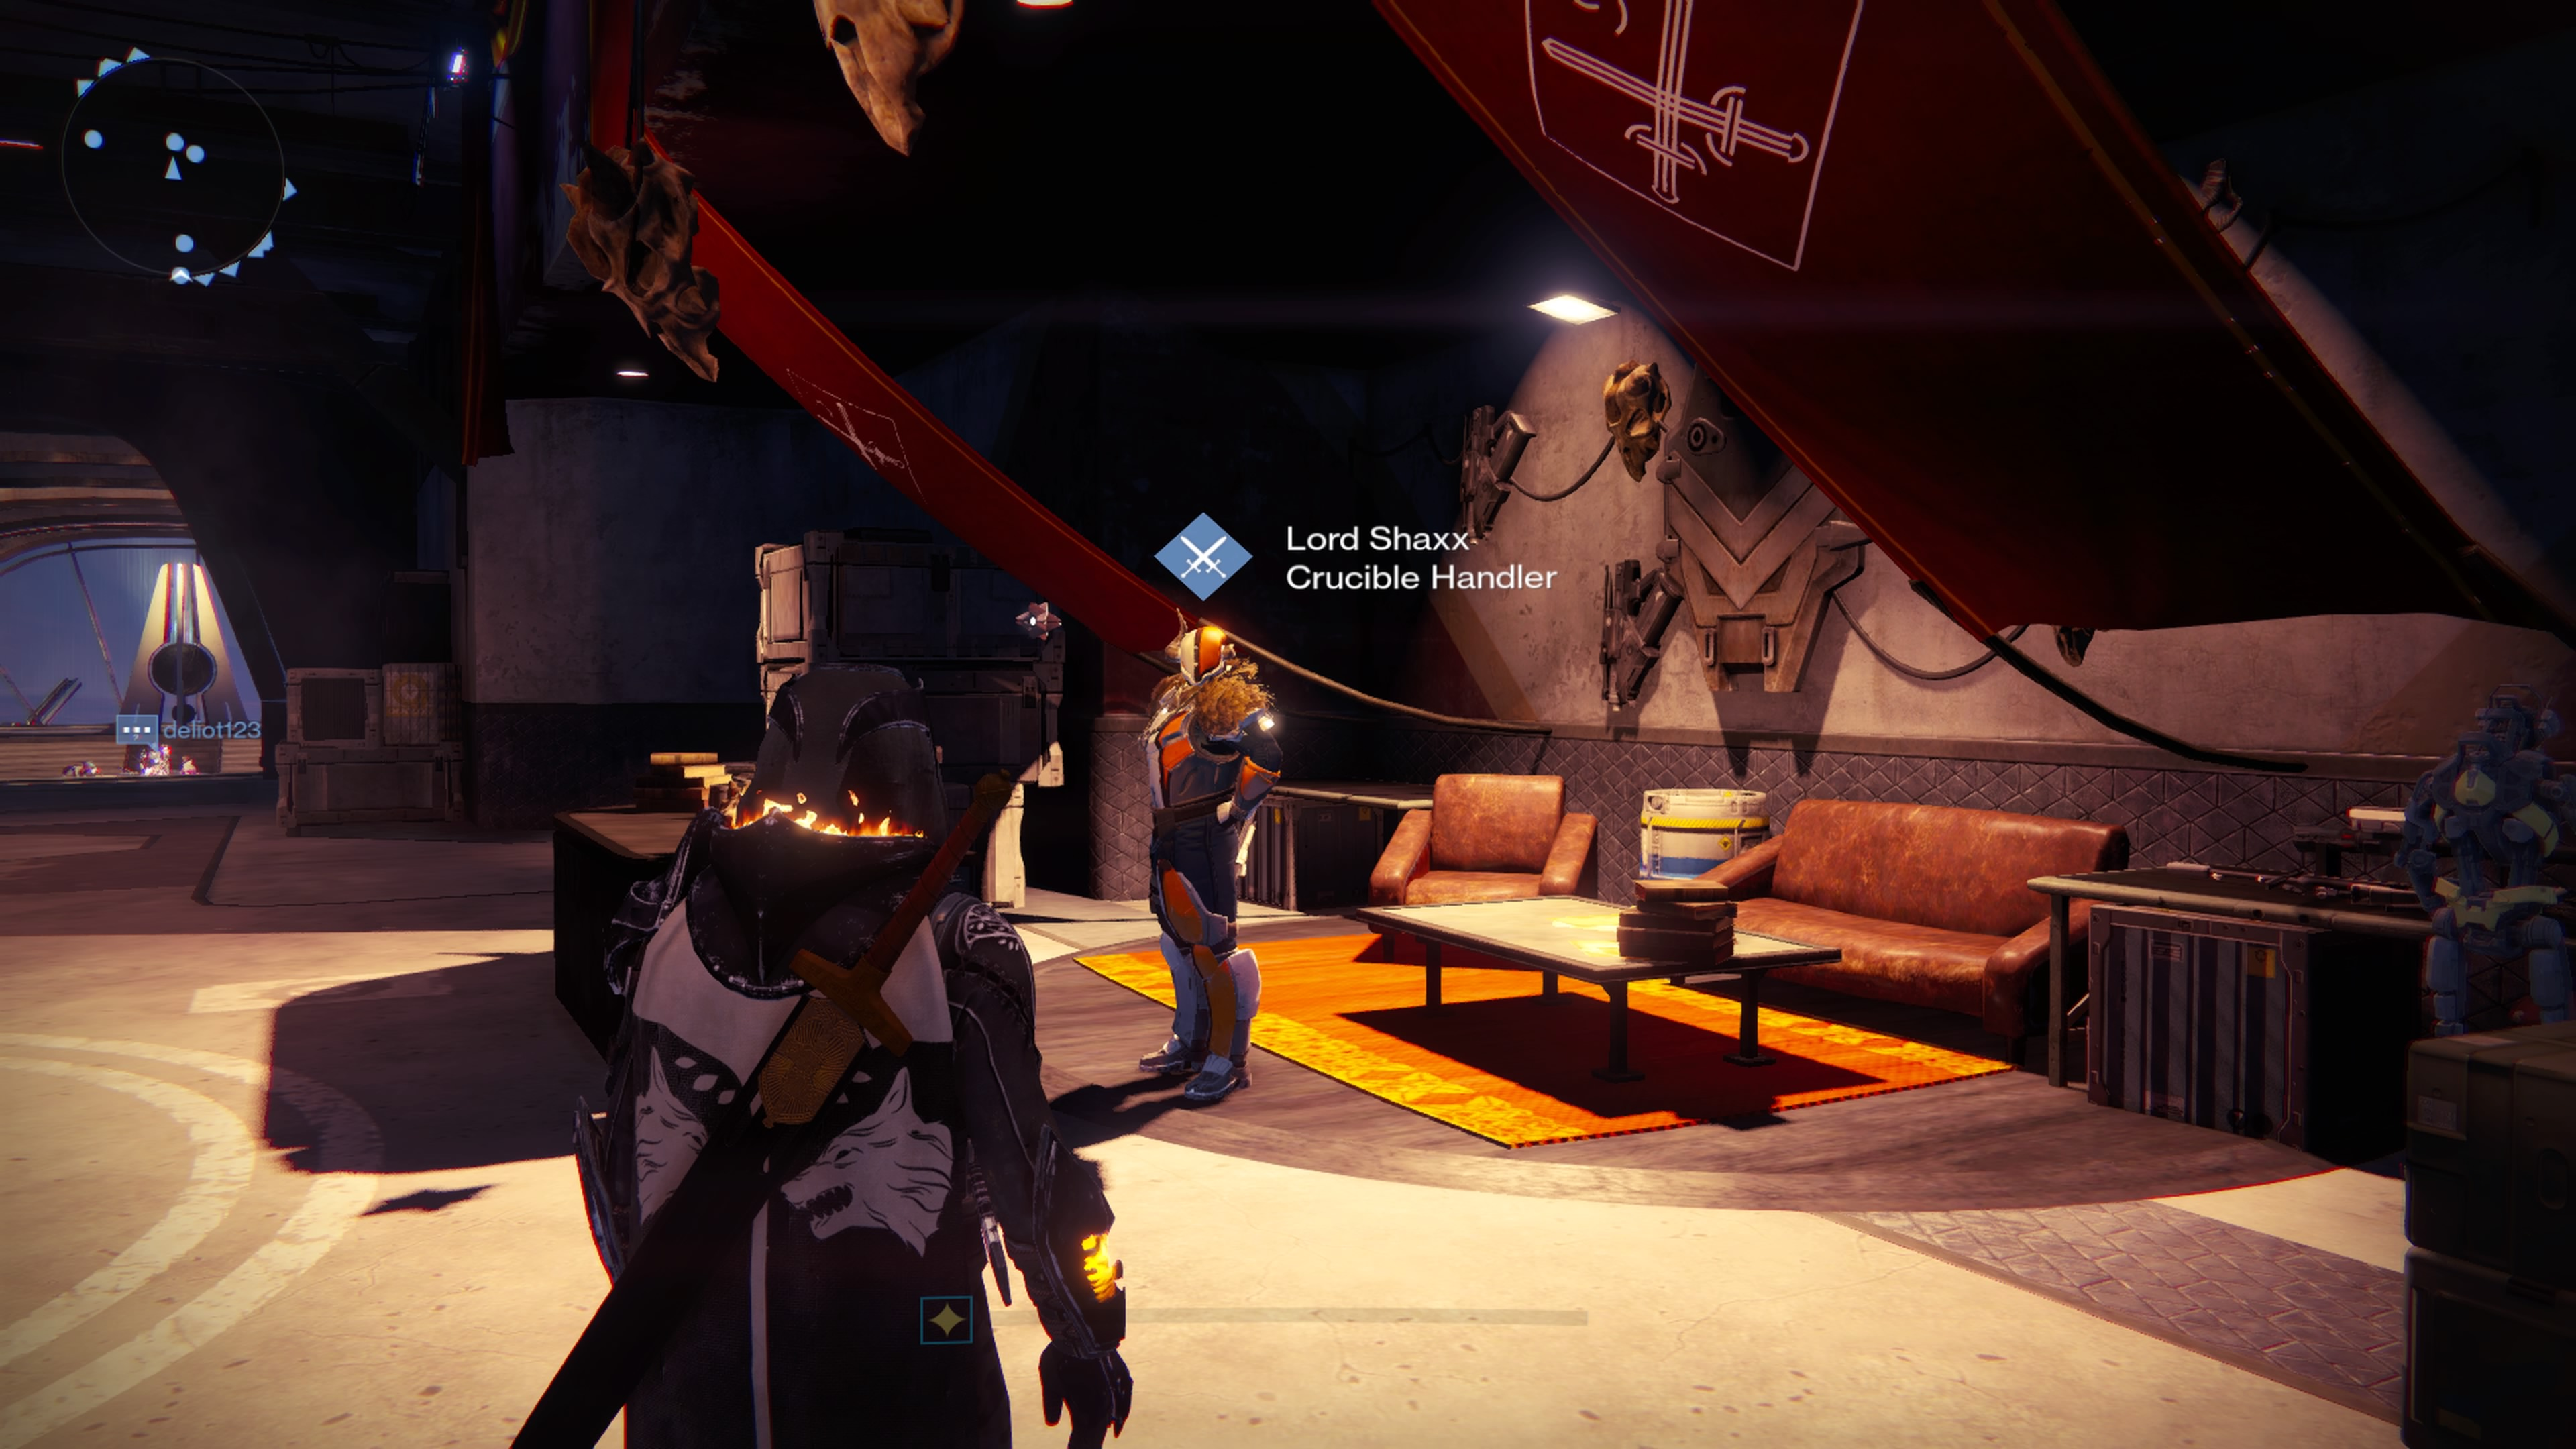 Visit Lord Shaxx and grab two of his Bounties. Complete them in the Crucible